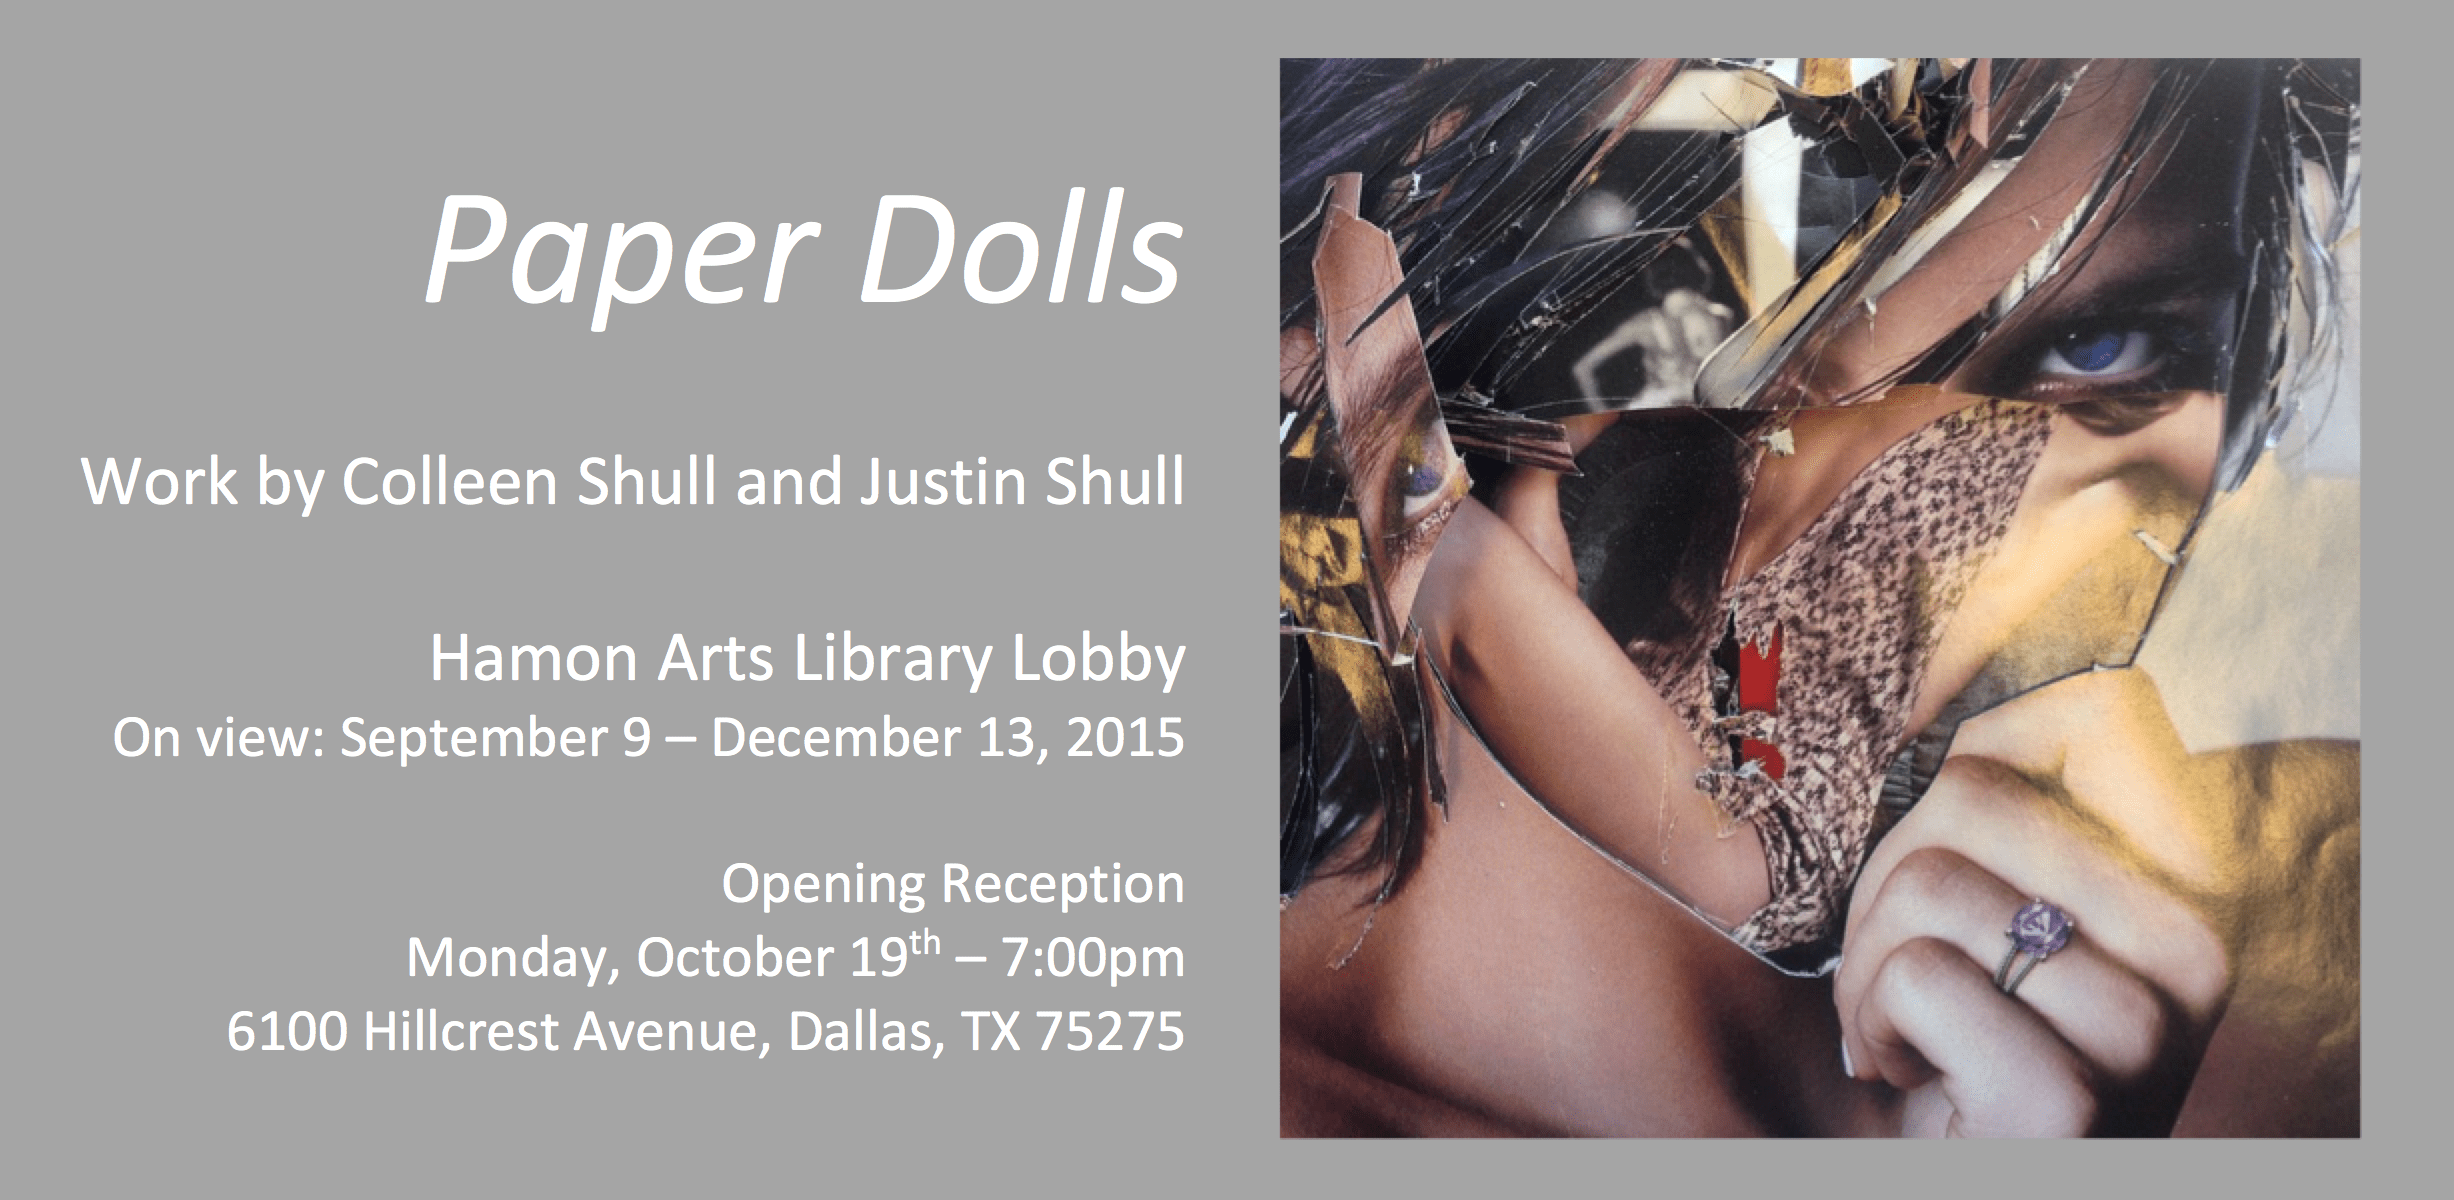 Paper Dolls Exhibition and Reception